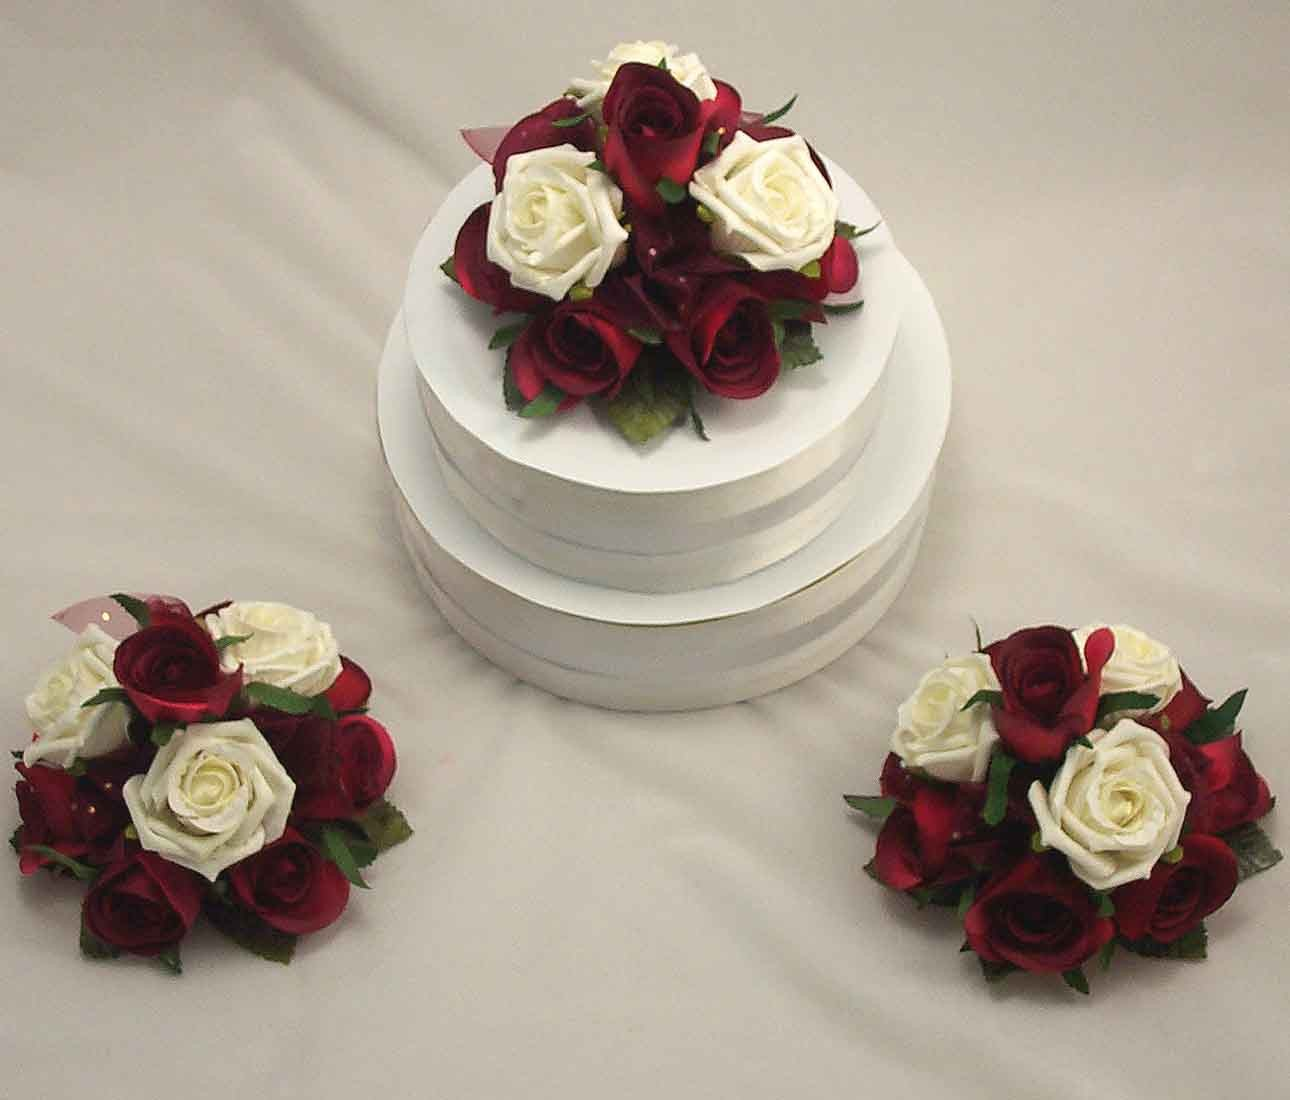 Cake Decorations Set Of 3 Burgundy Ivory Rose Cake Toppers